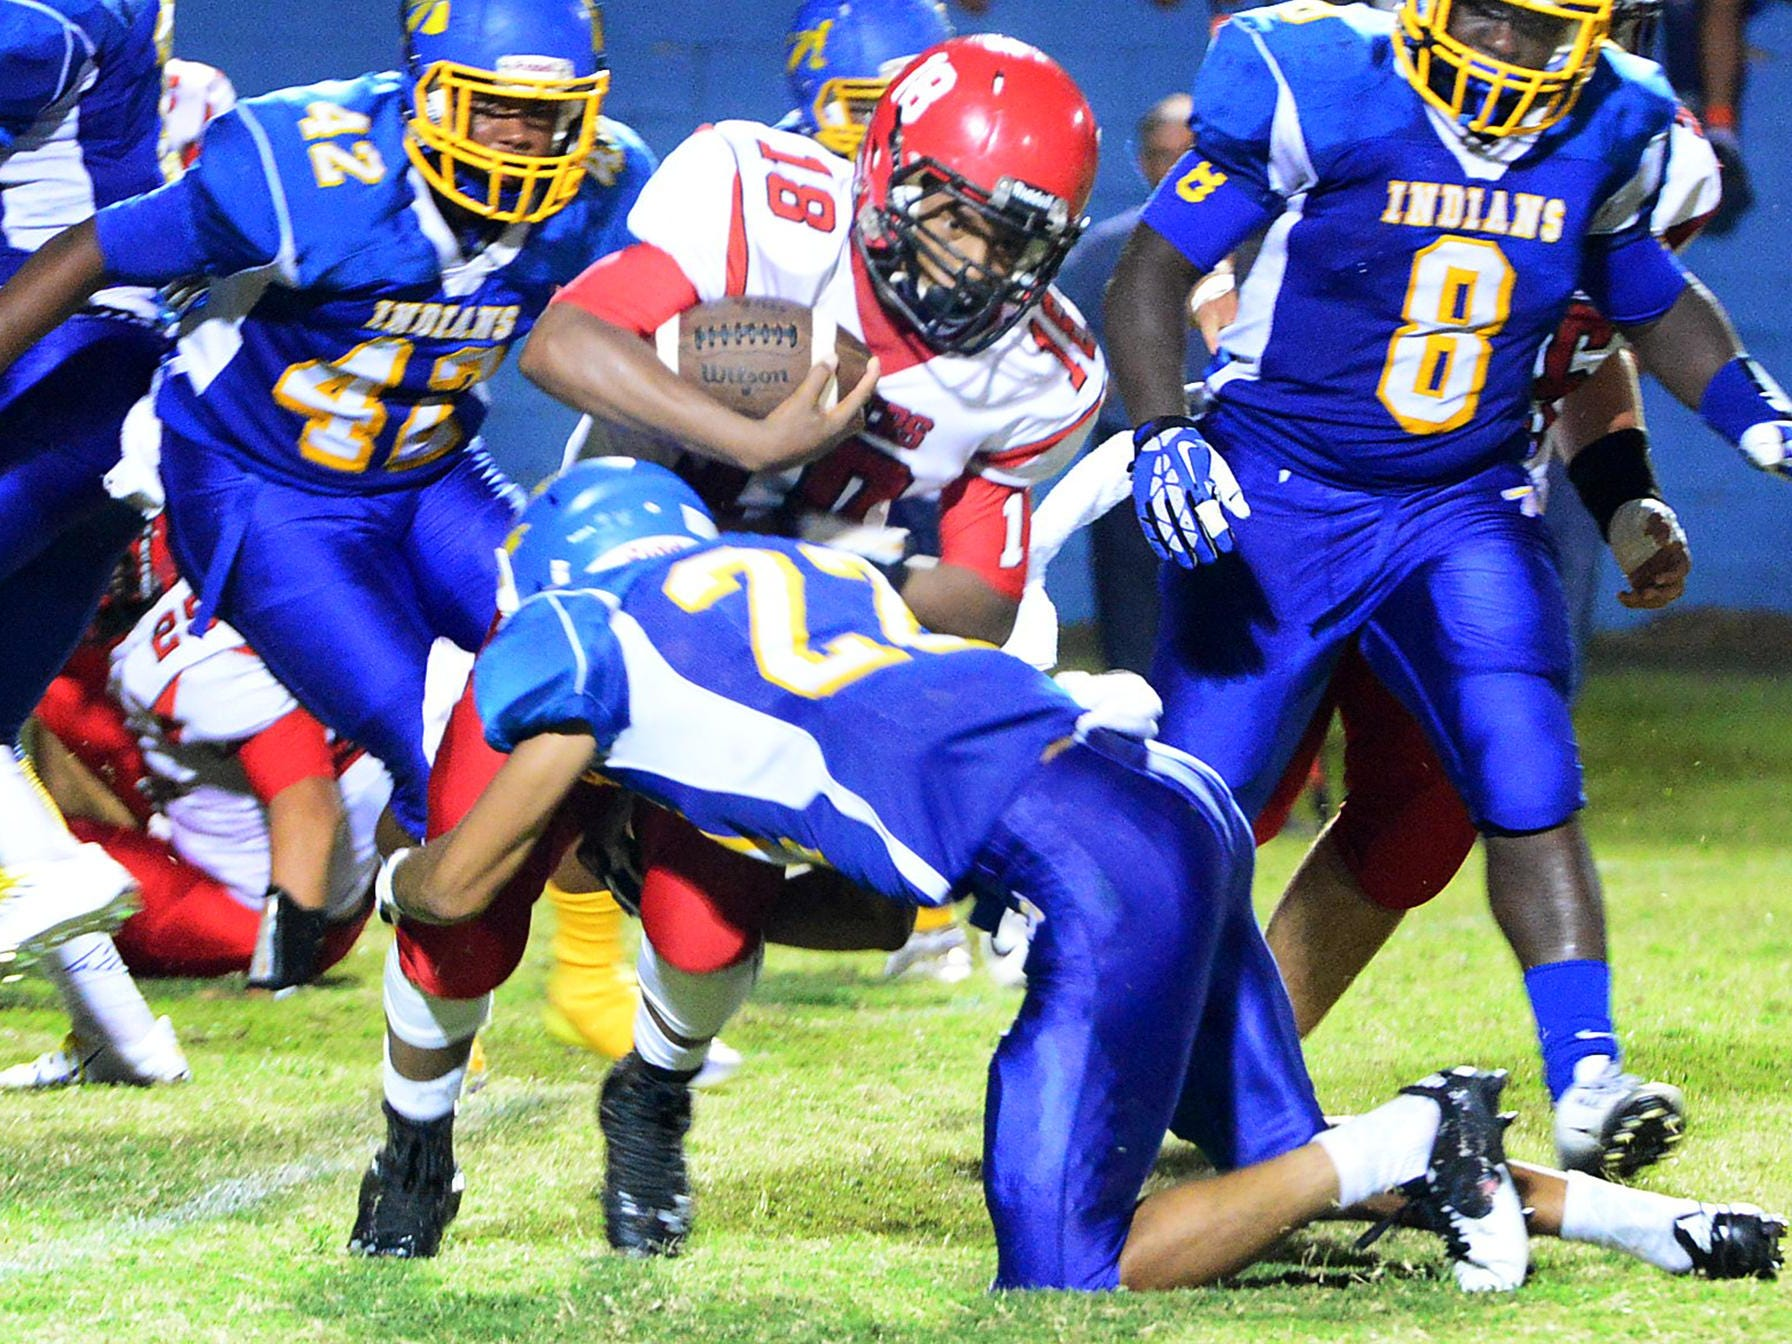 Lexington's De'Andre Scott is stopped by North Side's Jordan Winston on Friday evening at North Side.